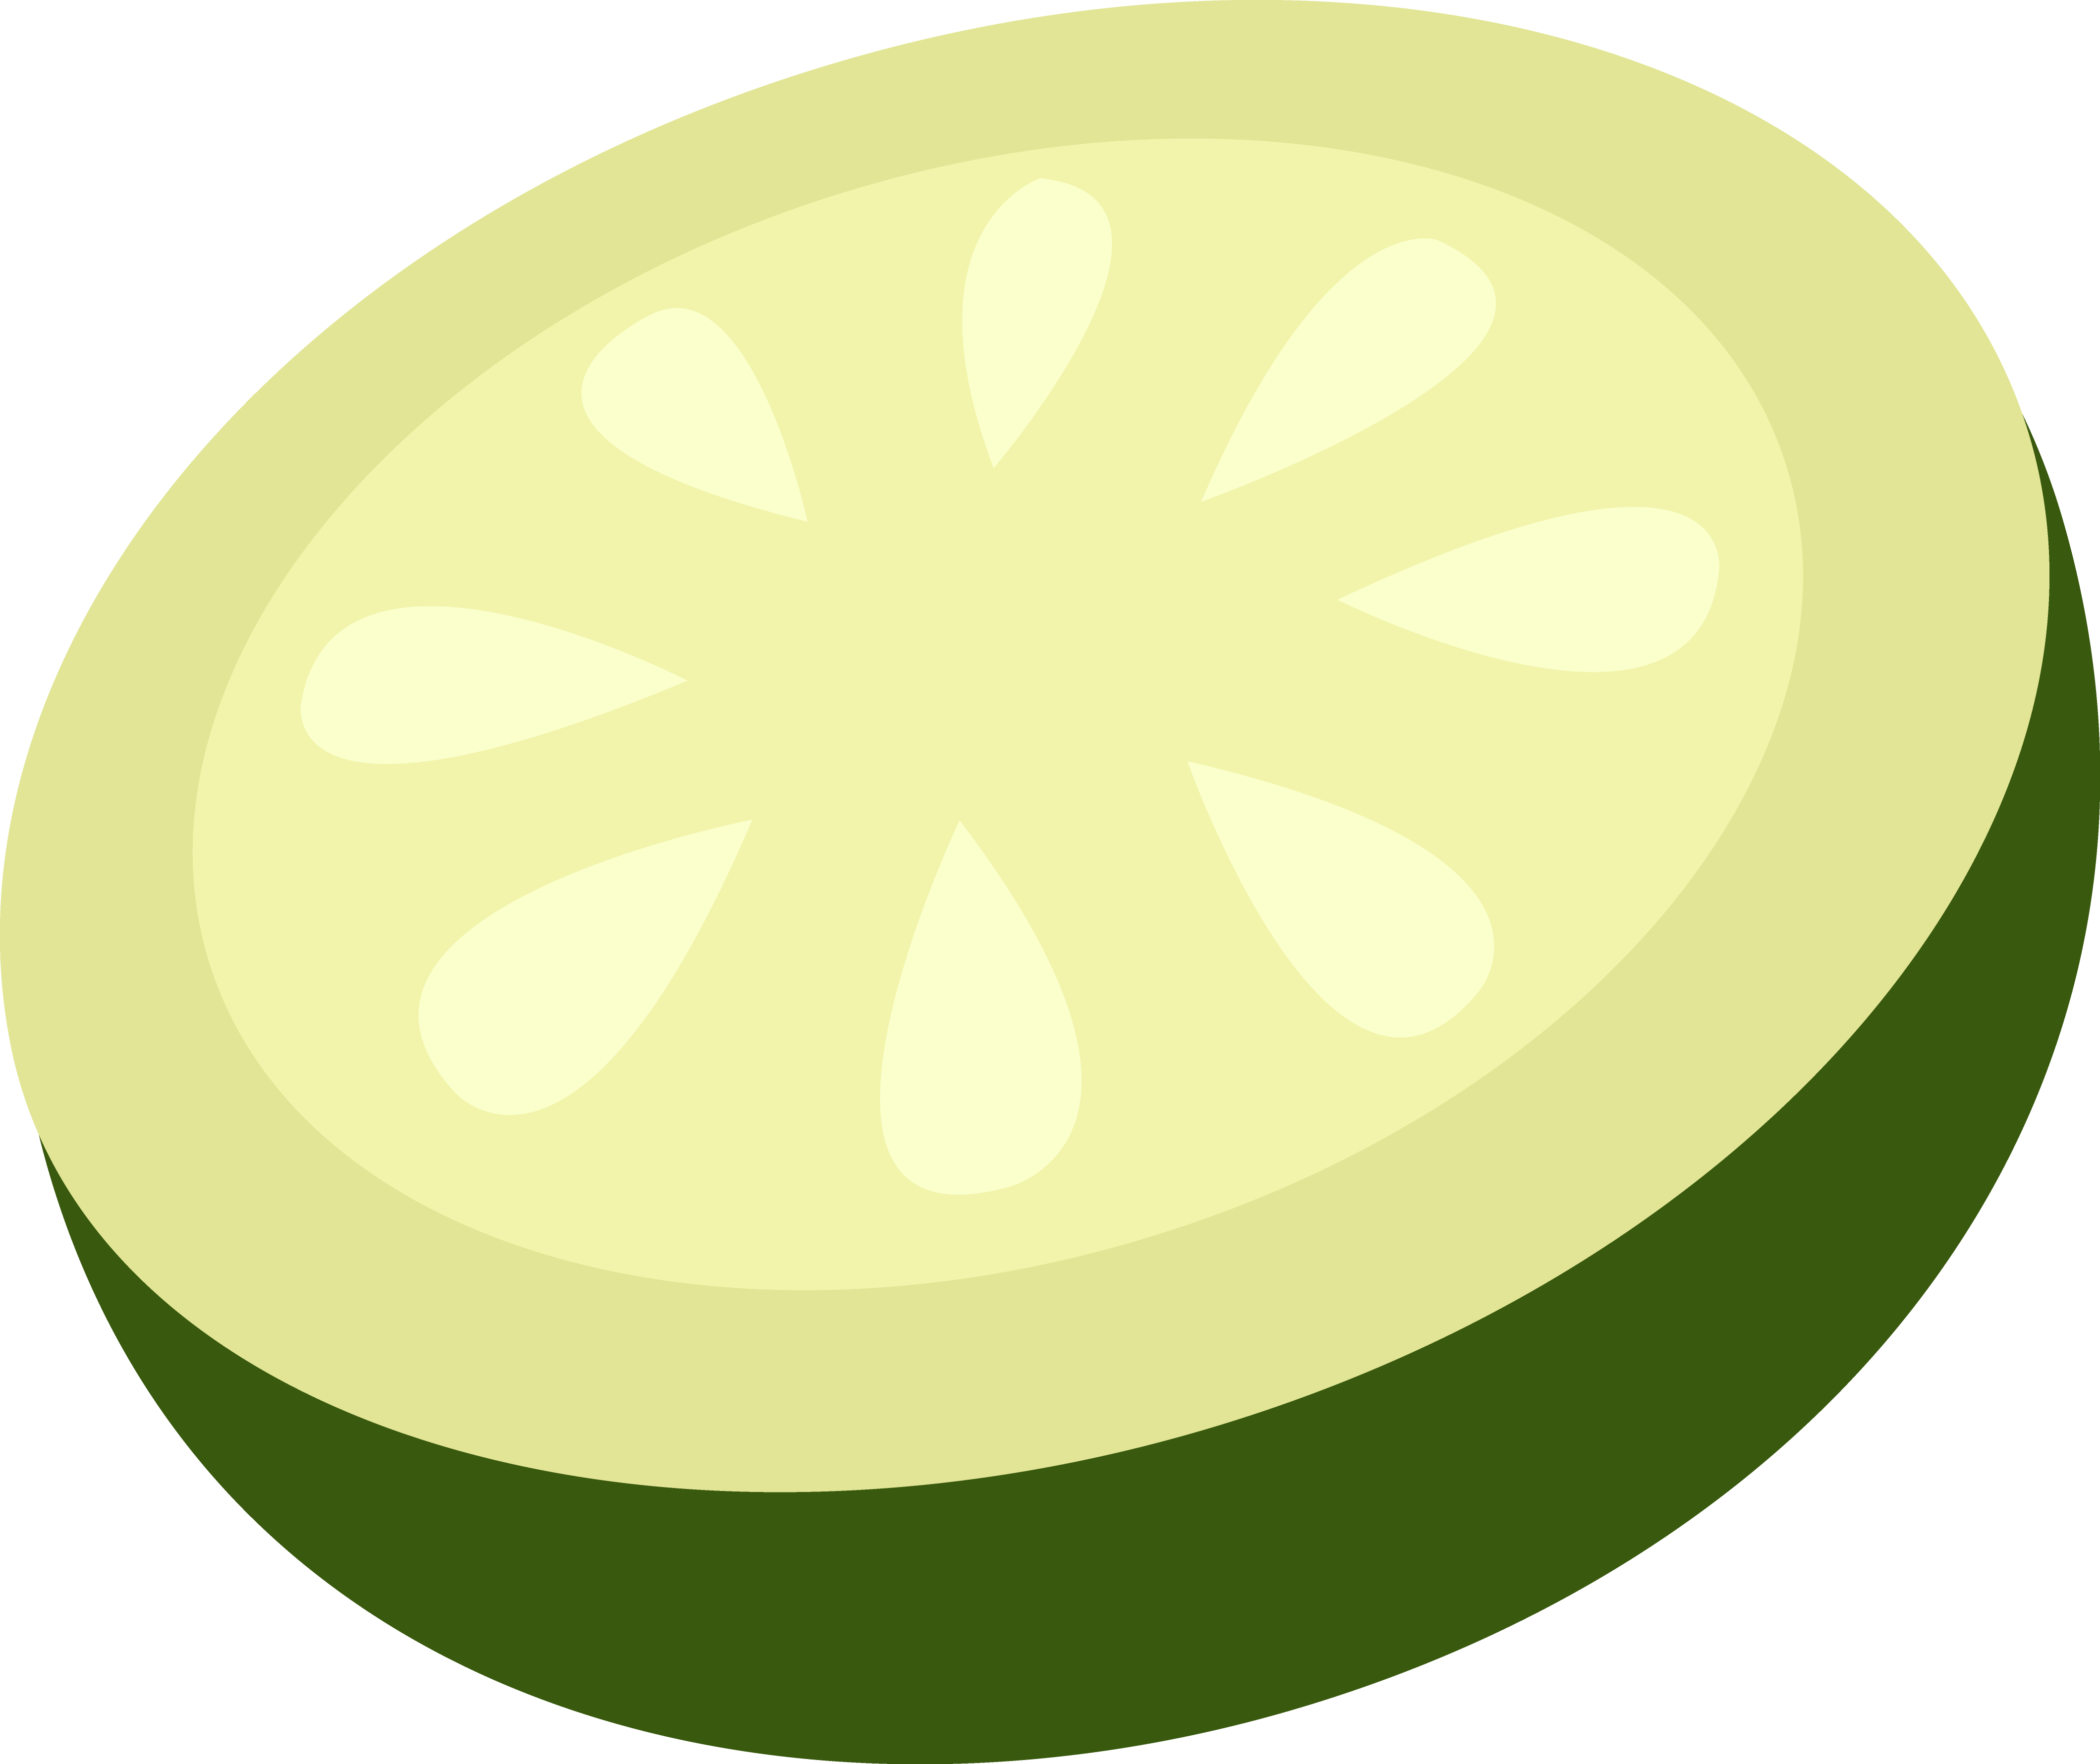 Lemons clipart painted. Cucumber slice drawing at